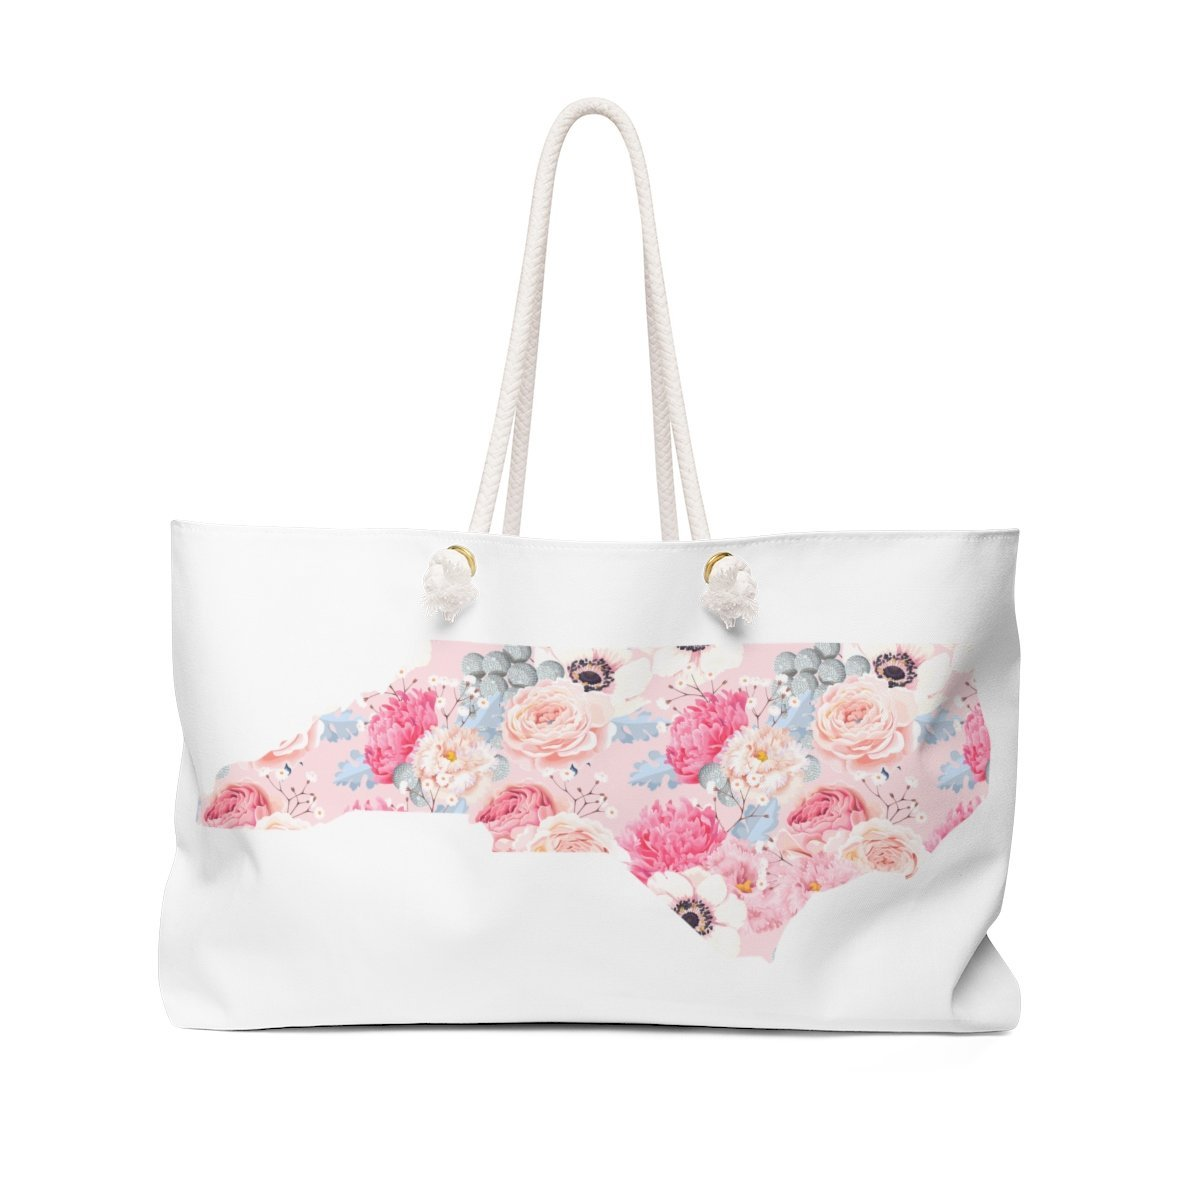 Leanne & Co. Bags 24x13 North Carolina Peonies Weekender Bag